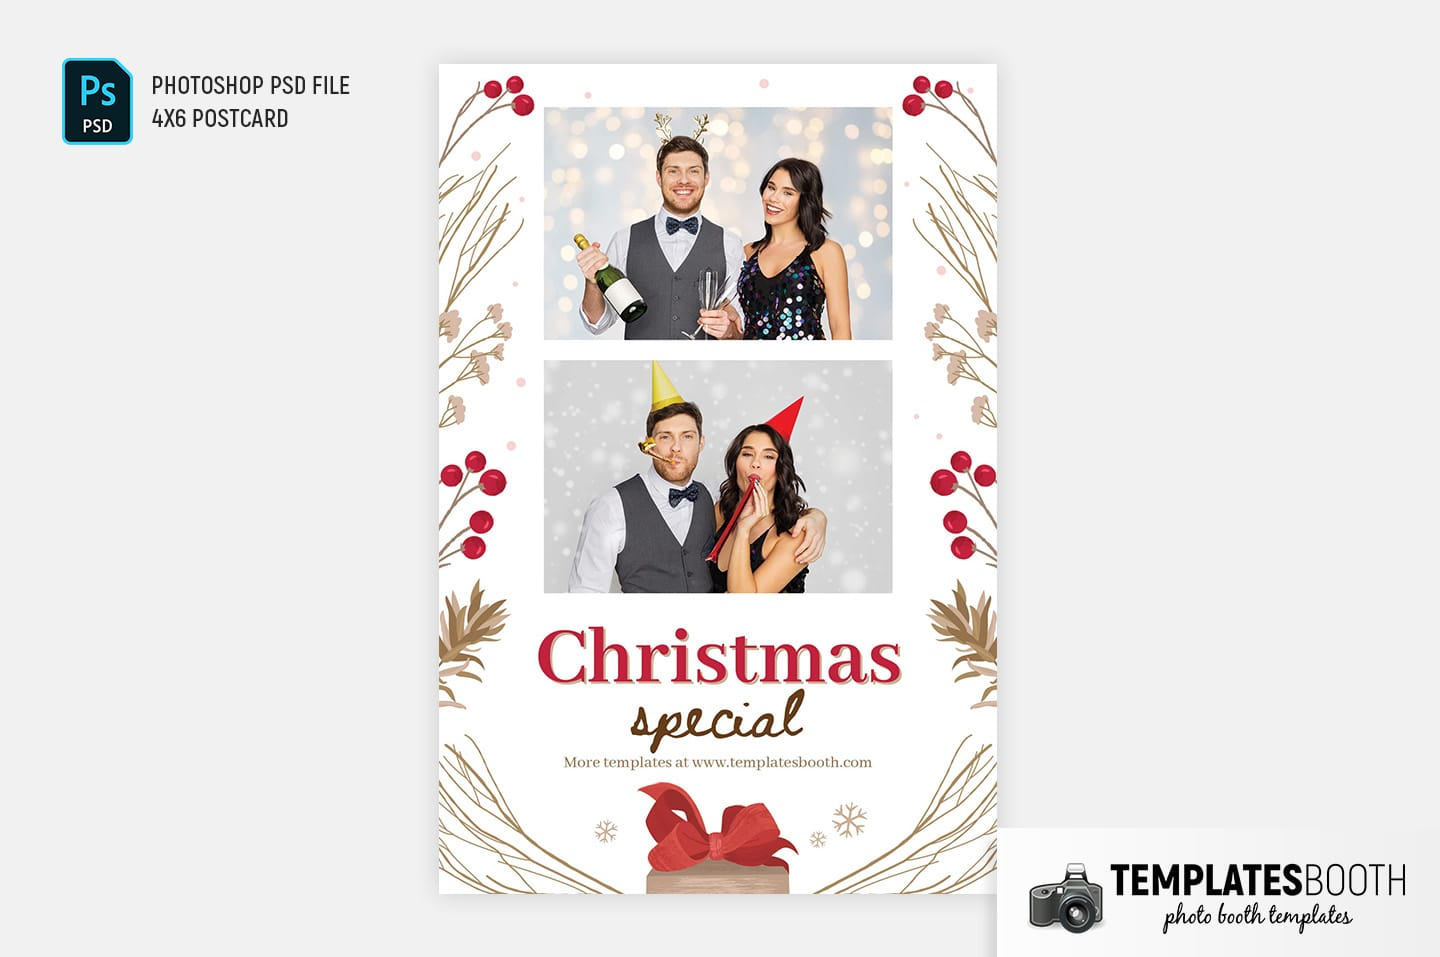 Rustic Christmas Photo Booth Template (4x6 postcard)